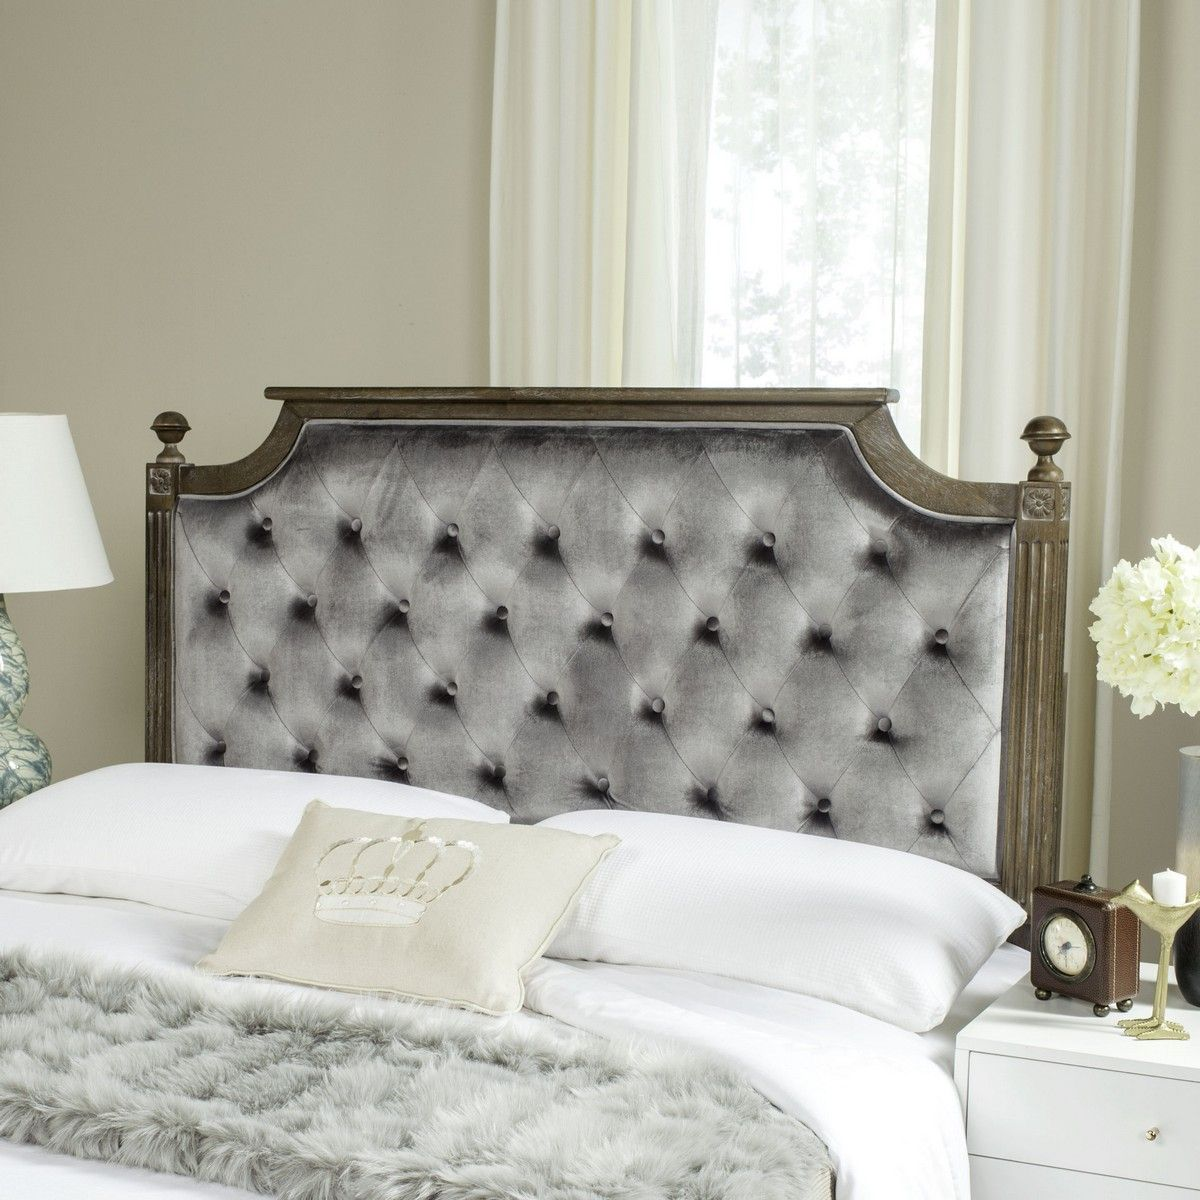 Rustic Wood Grey Tufted Velvet Headboard Headboards Furniture By Safavieh Tufted Upholstered Headboard Rustic Wood Headboard Upholstered Panels